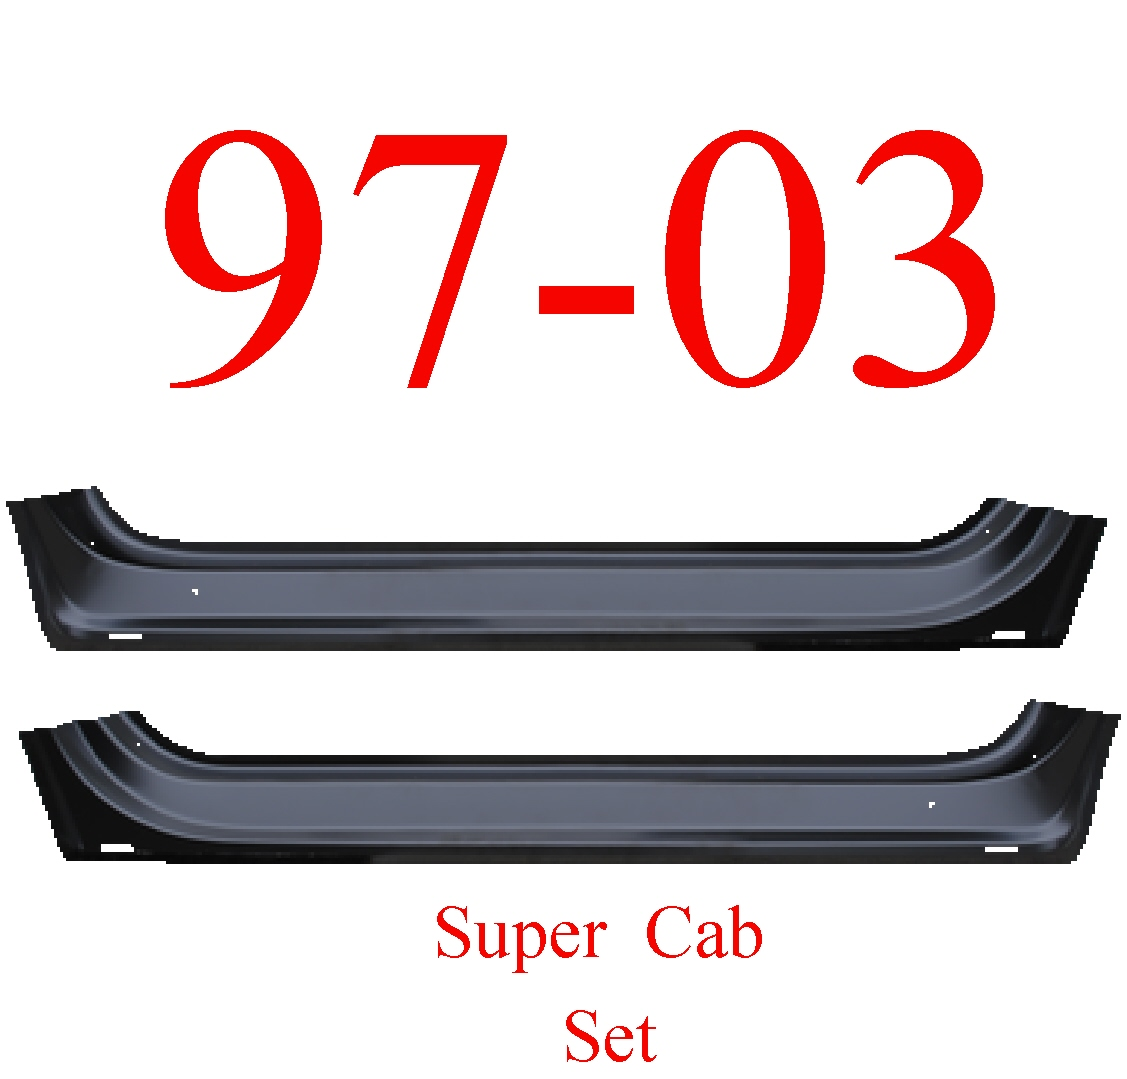 97-03 Ford Super Cab Front Inner Door Bottom Set